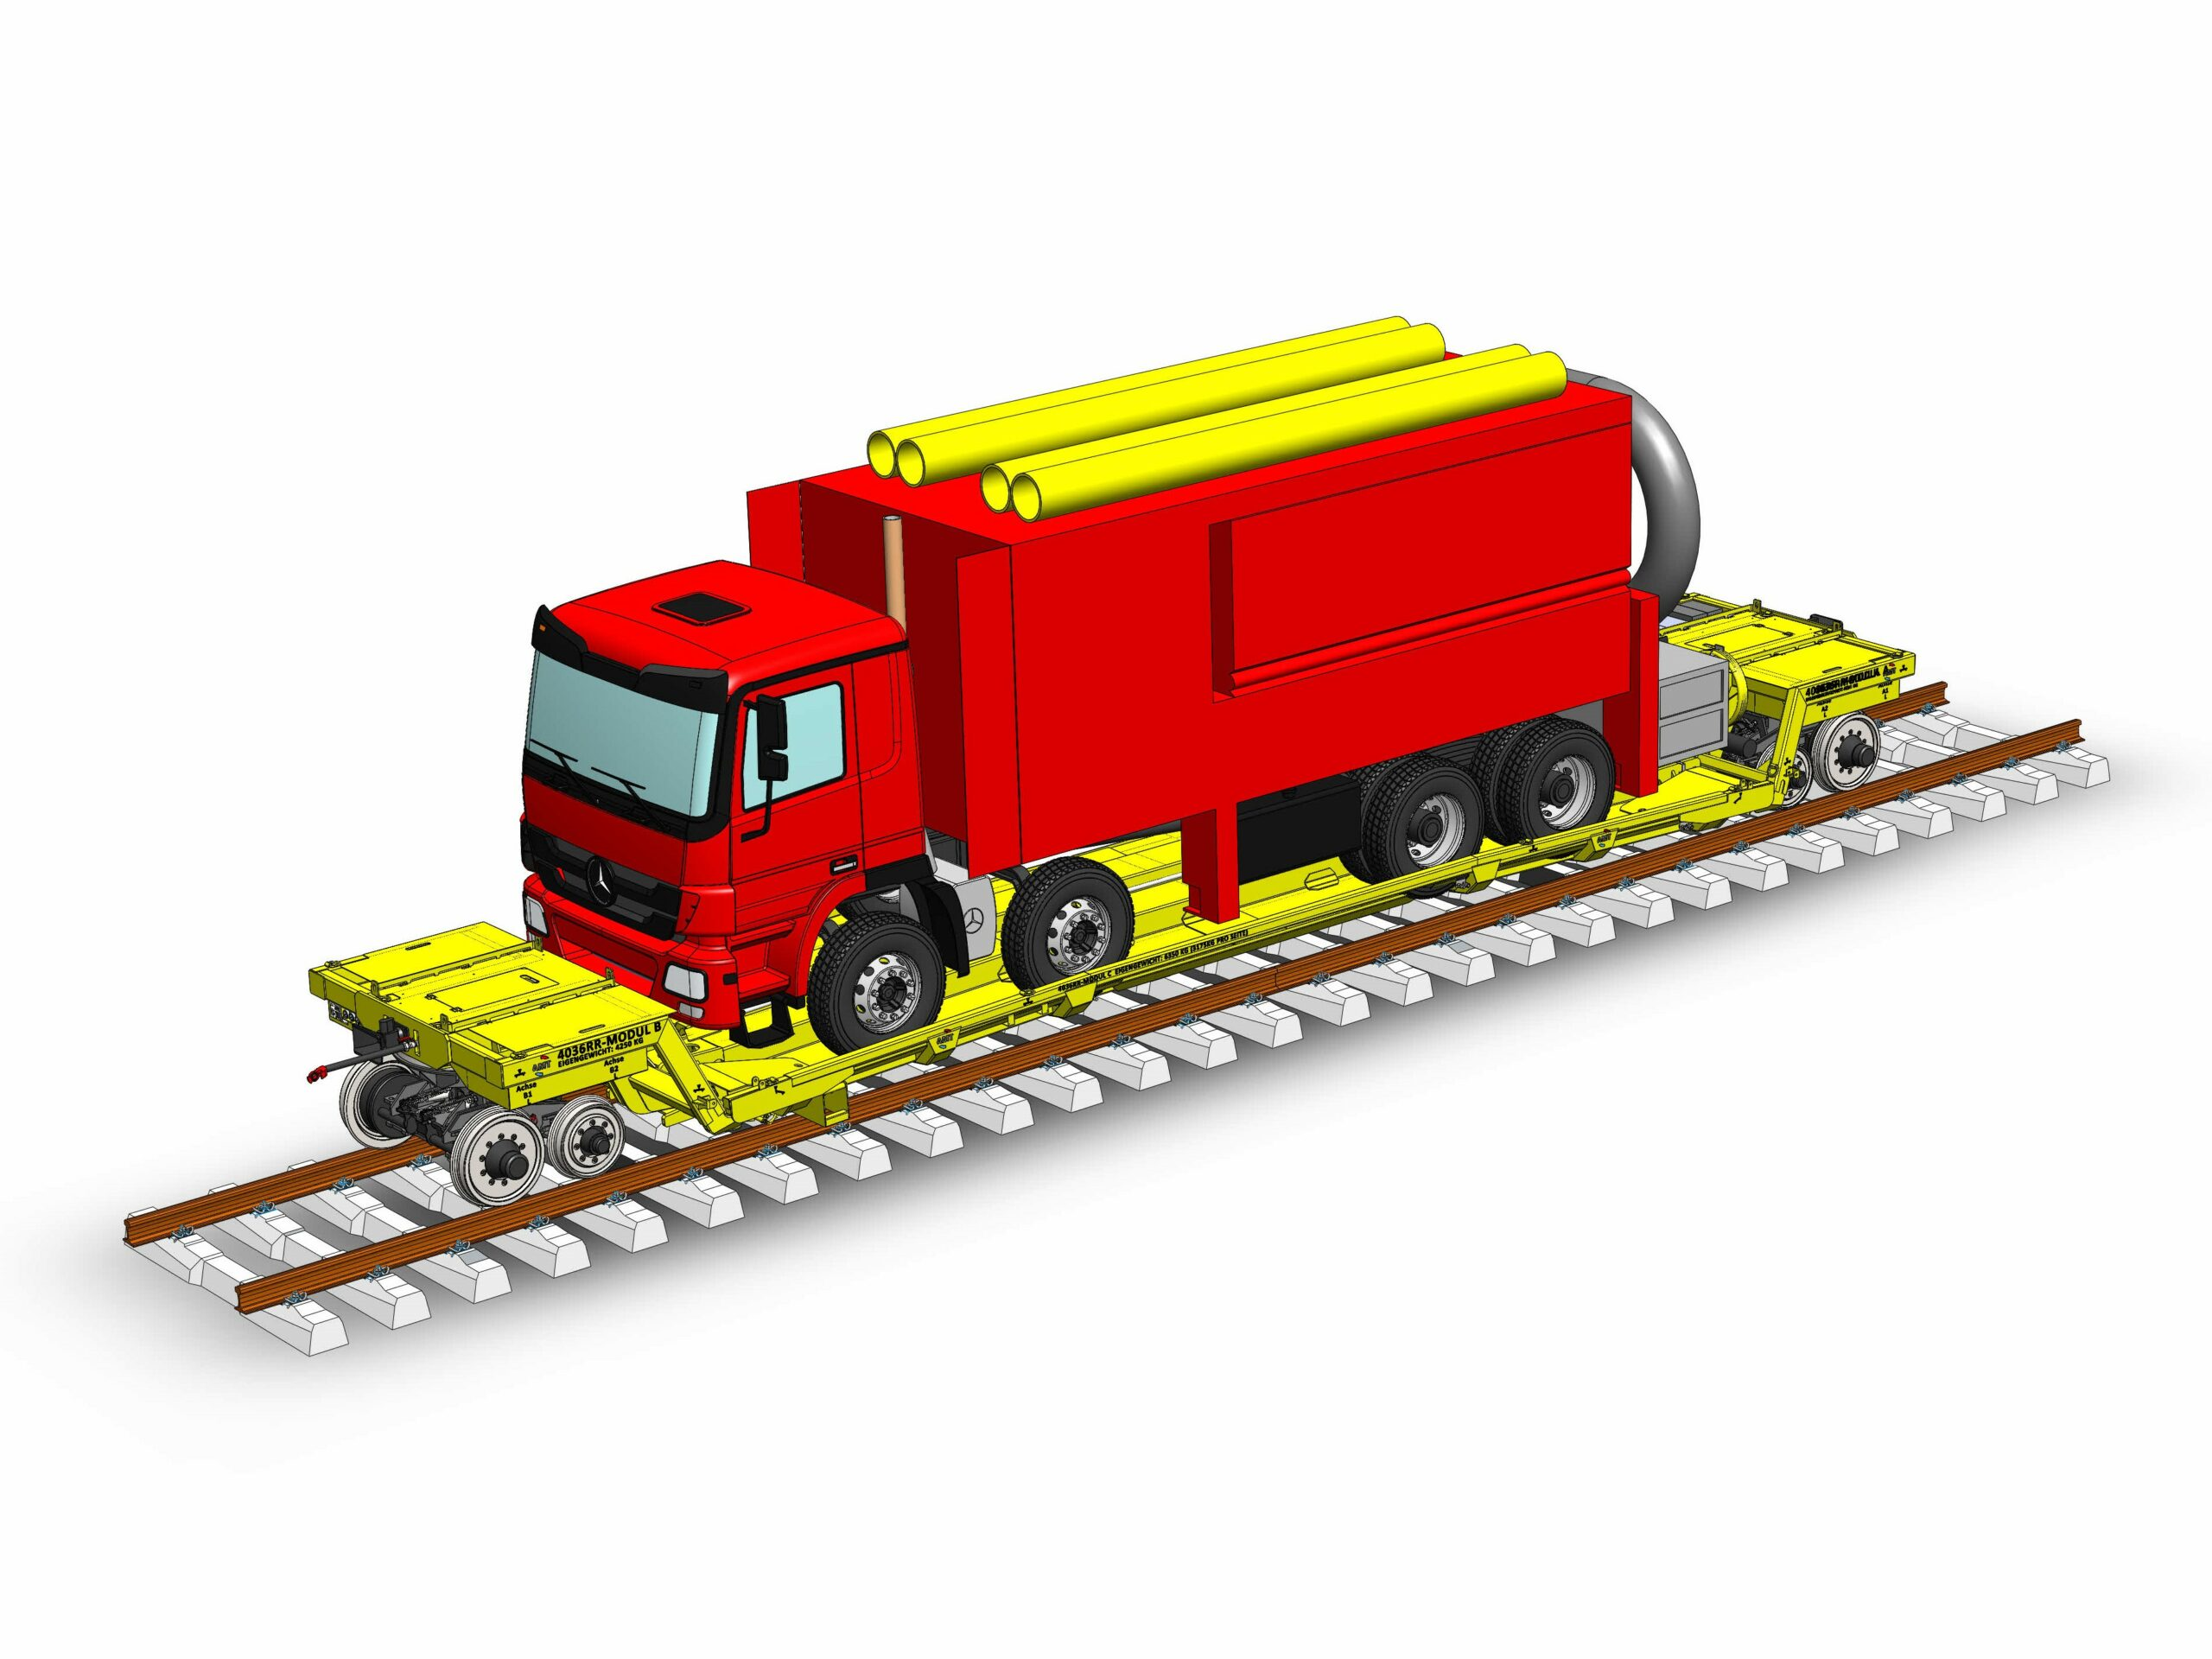 Self-driving rail trailer with truck